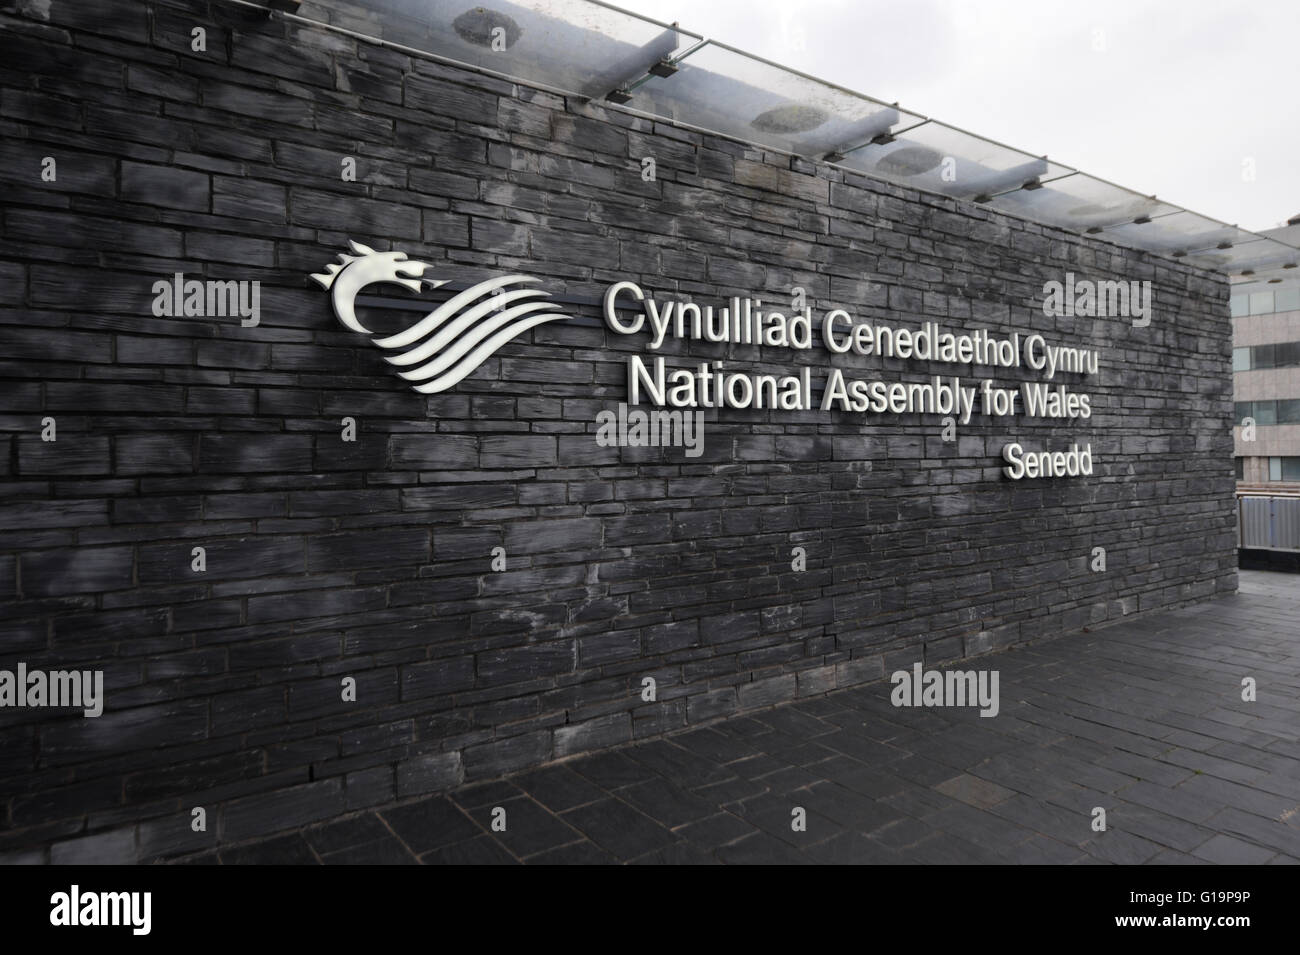 National Assembly For Wales,Cardiff,UK - Stock Image